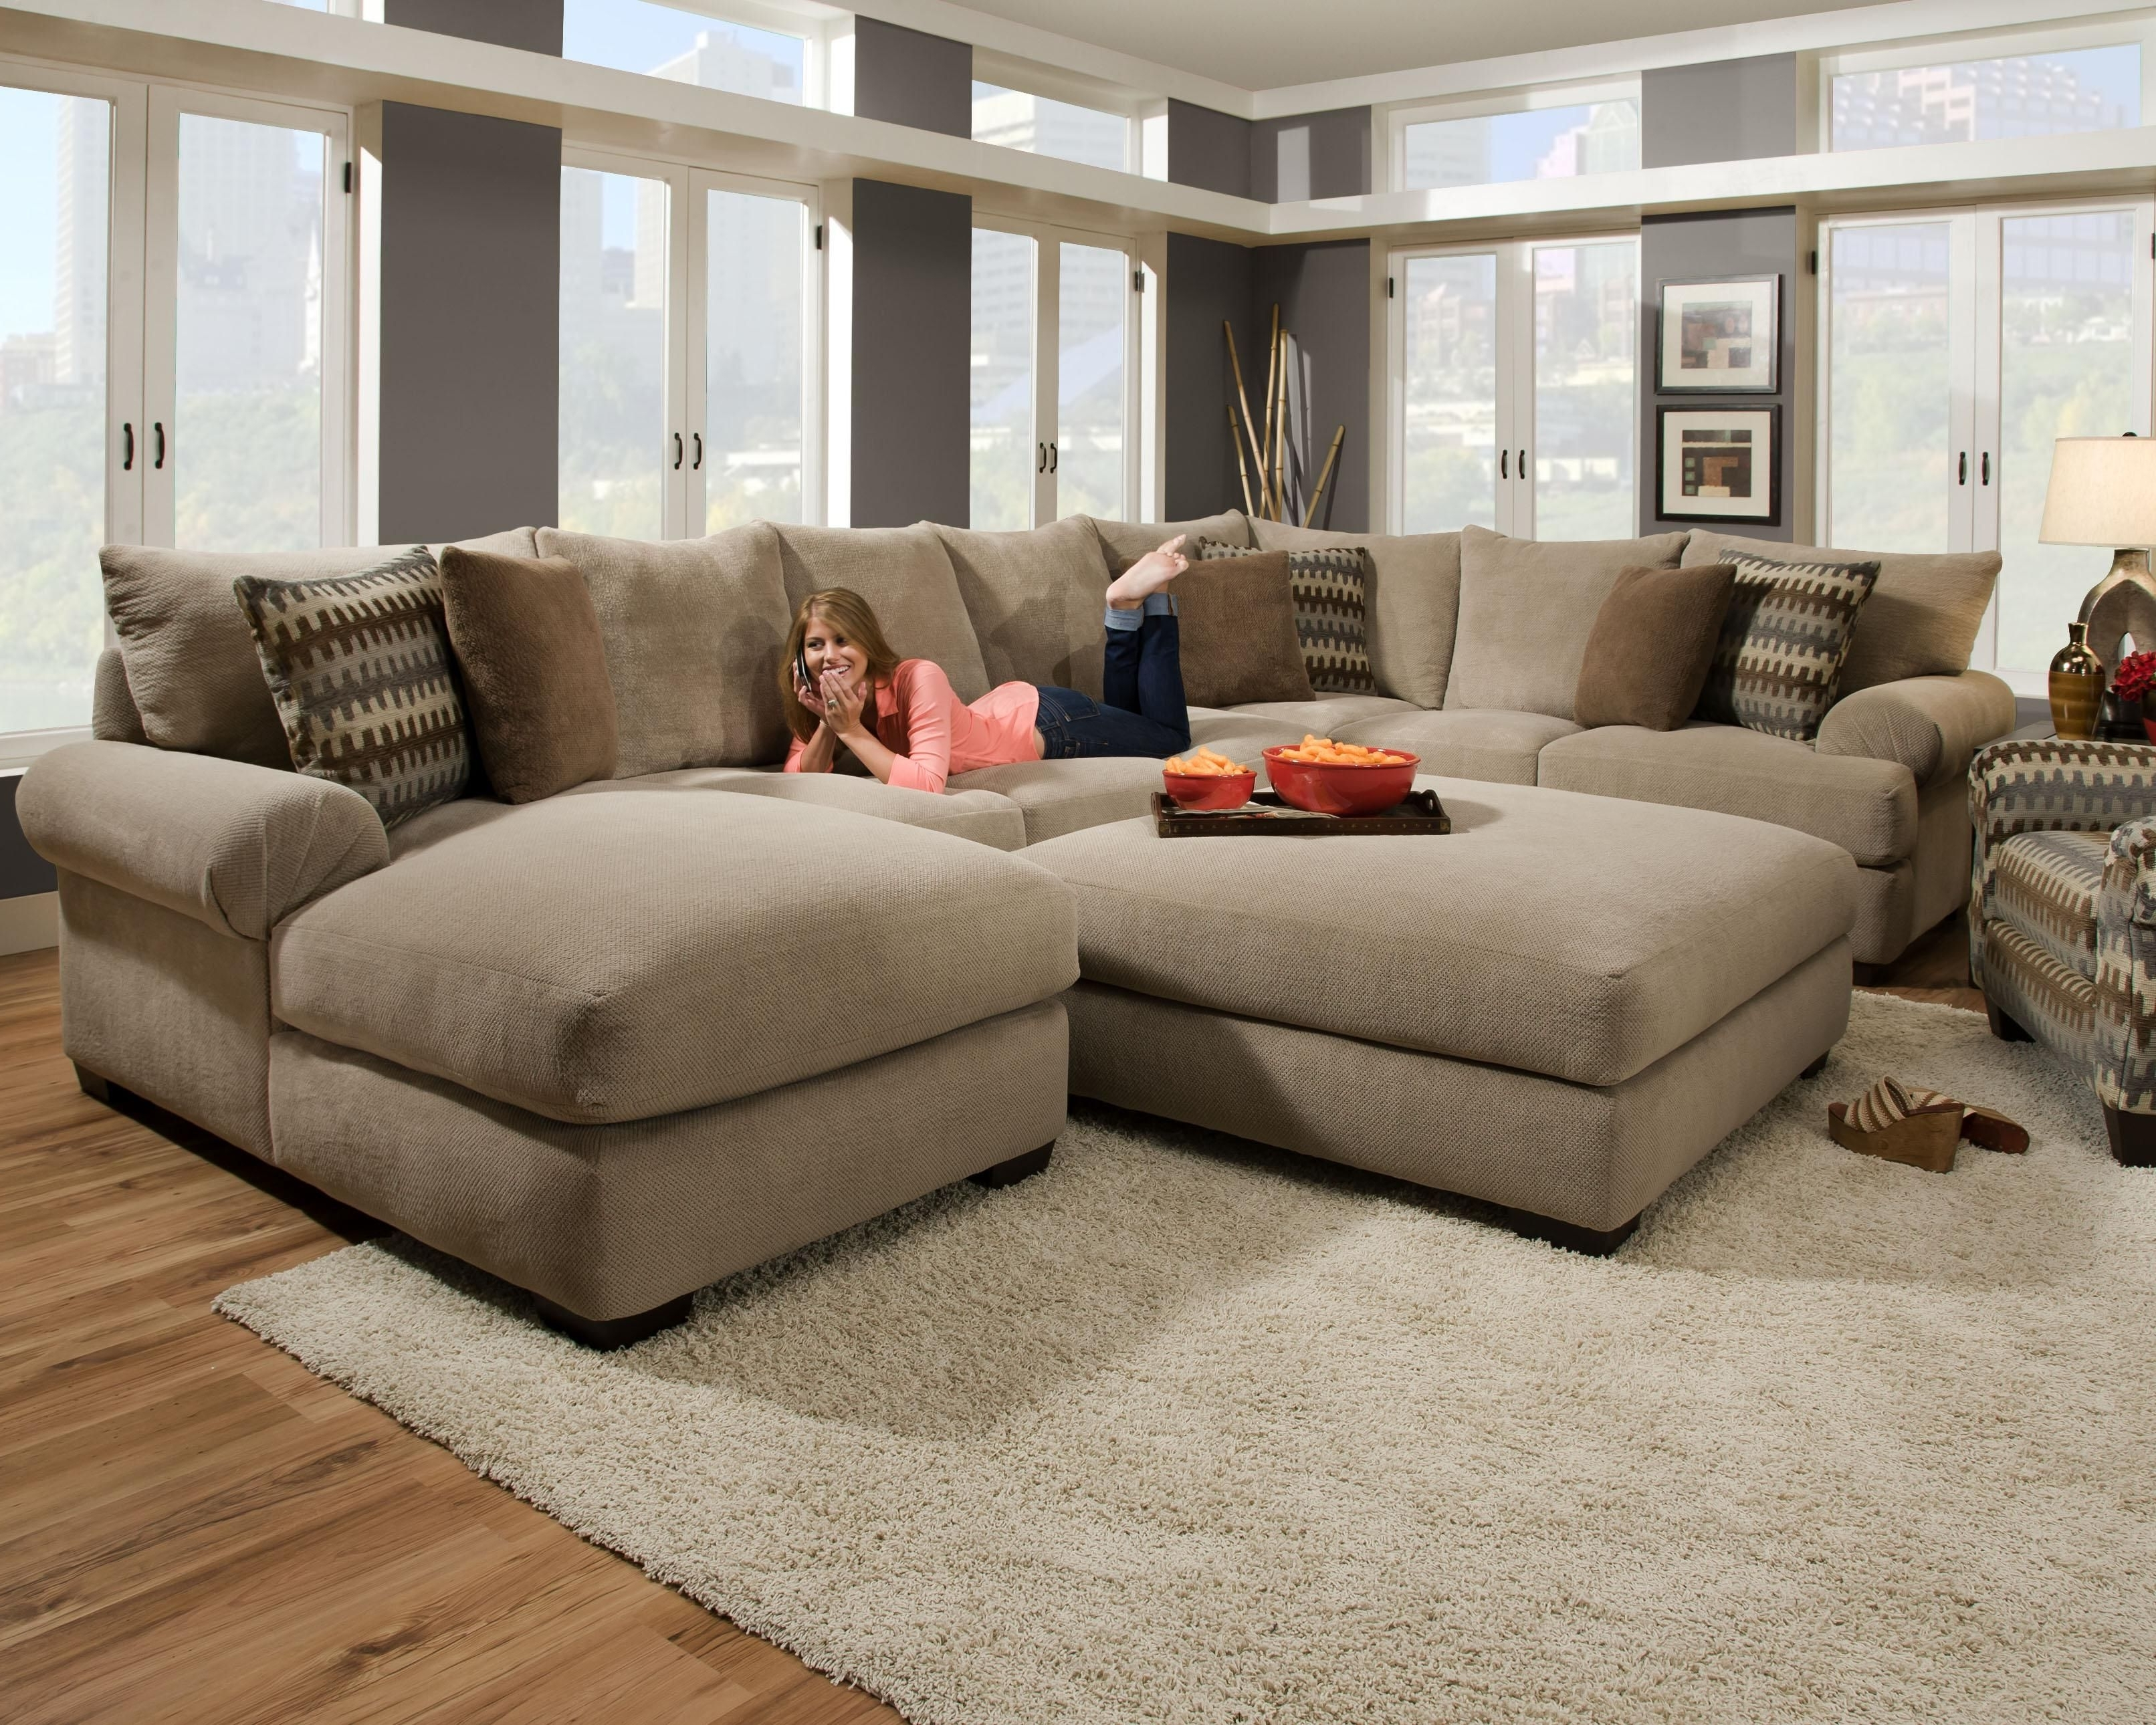 Furniture Design Idea For Living Room And Oversized U Shaped Within Most Current Huge U Shaped Sectionals (View 16 of 20)